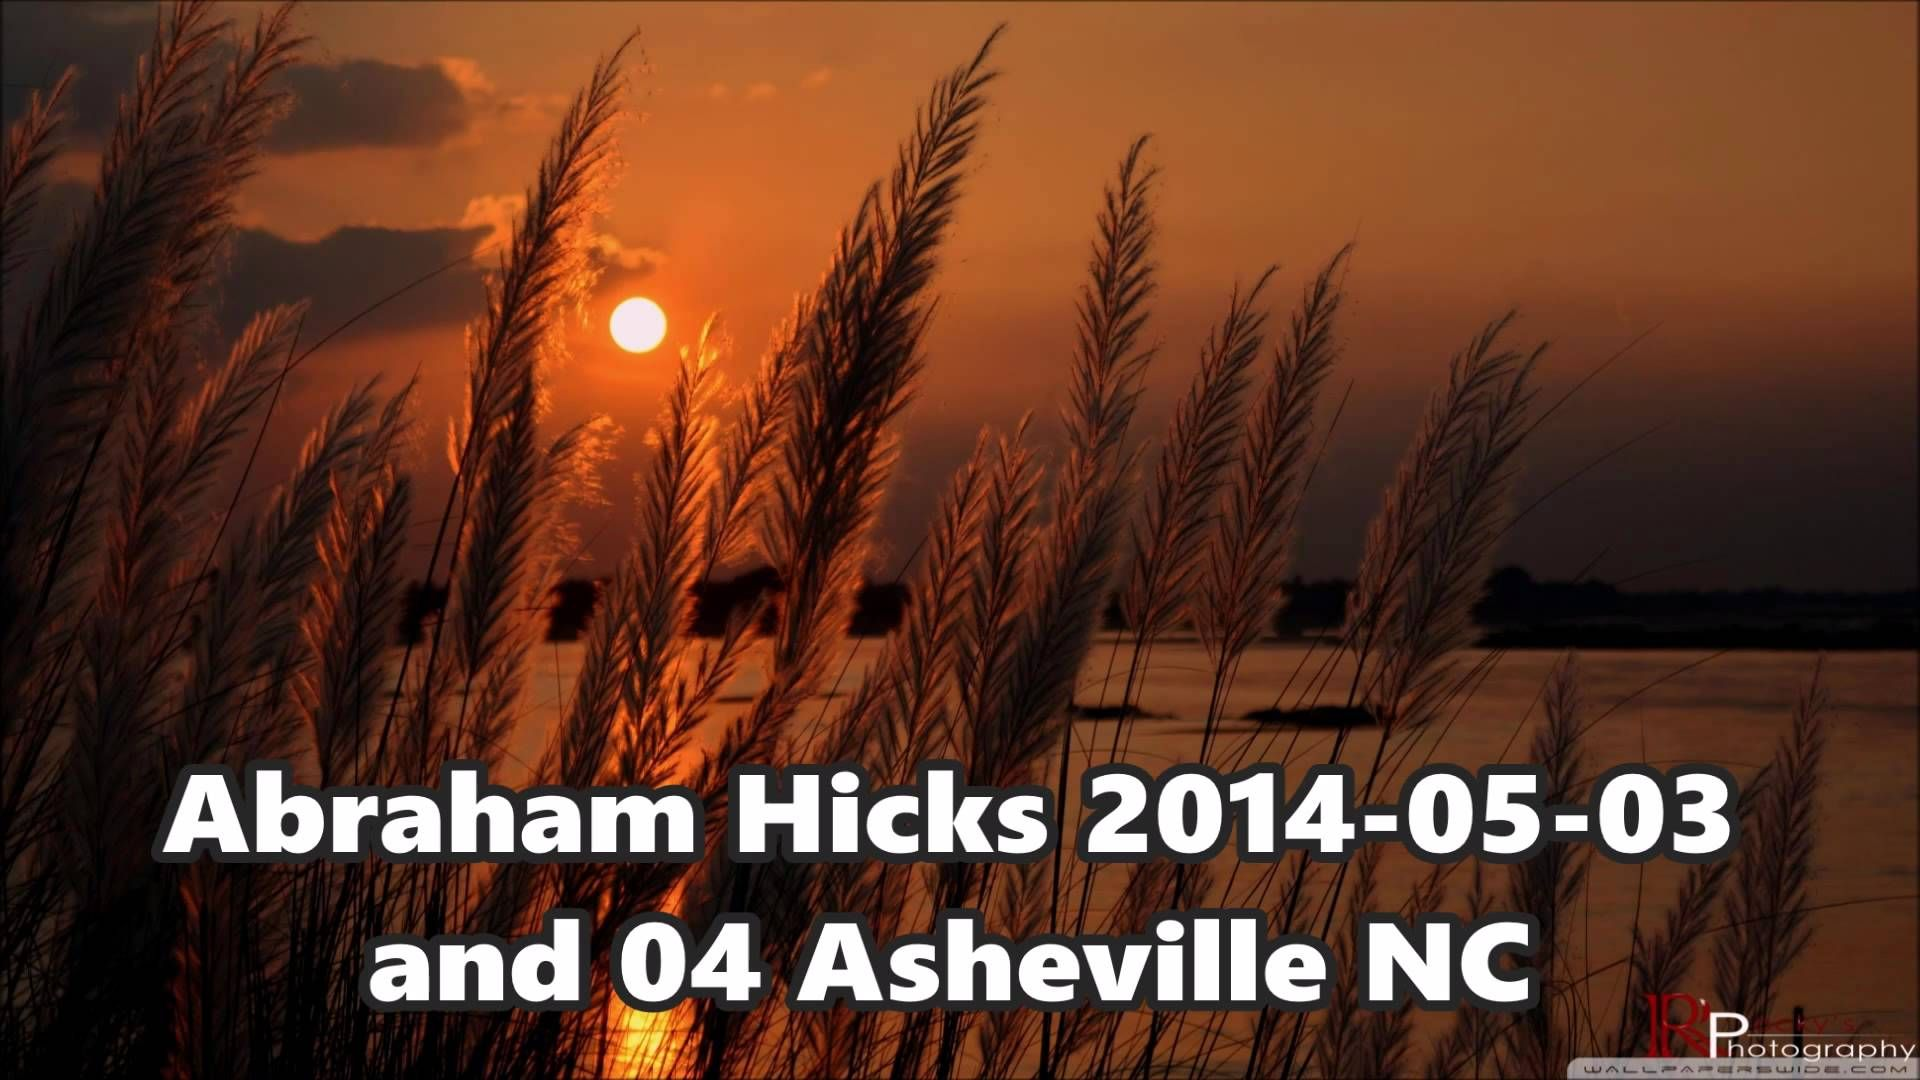 Abraham Hicks (2014-05-03) - Many avenues to prosperity